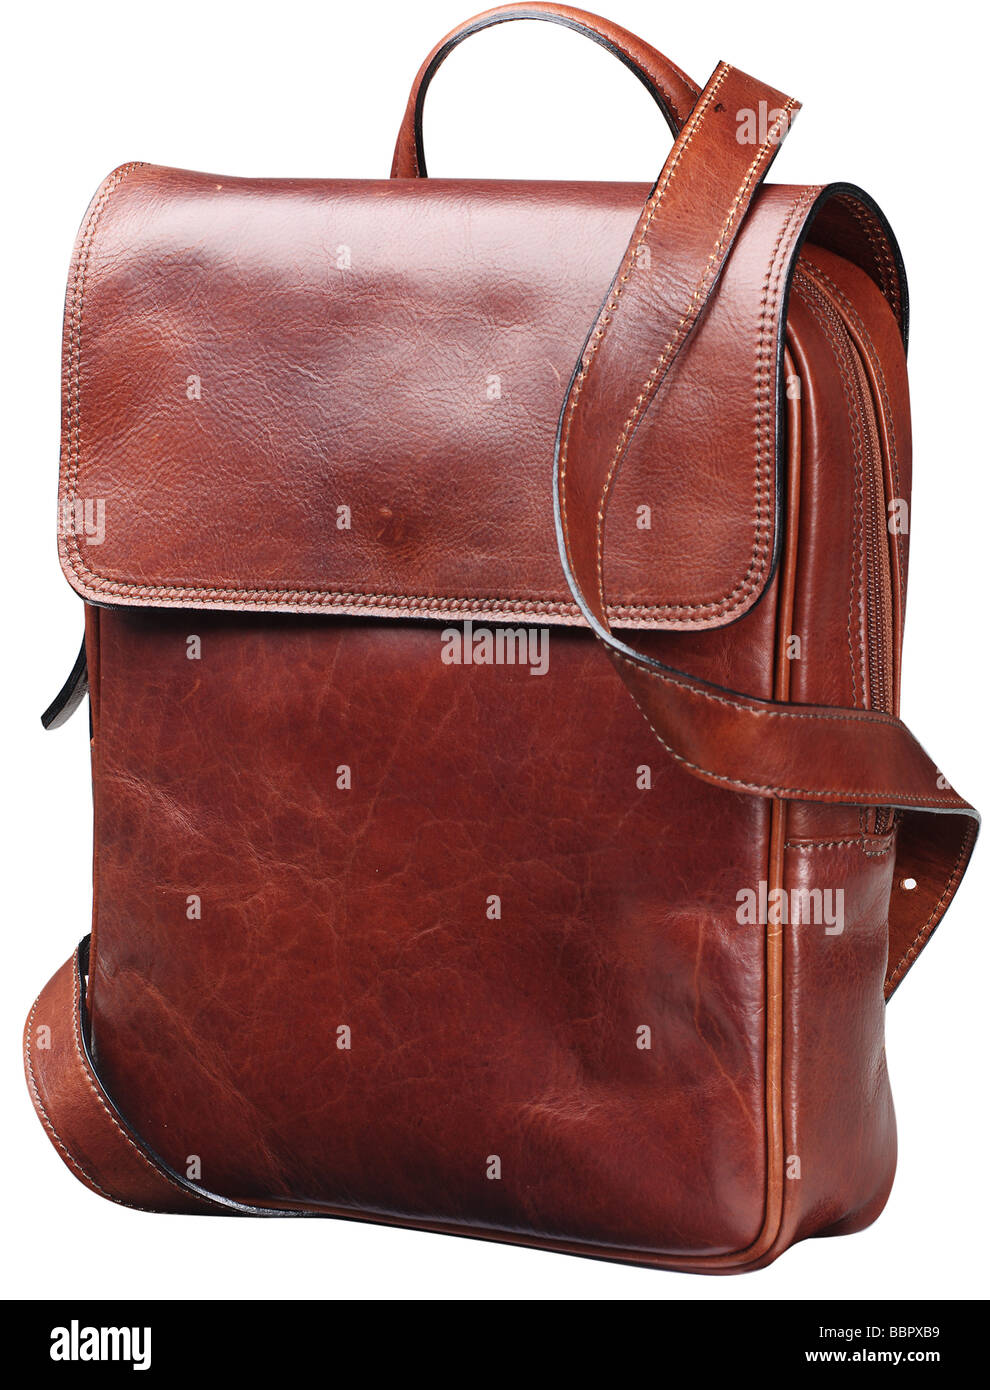 Brown leather bag unisex - Stock Image